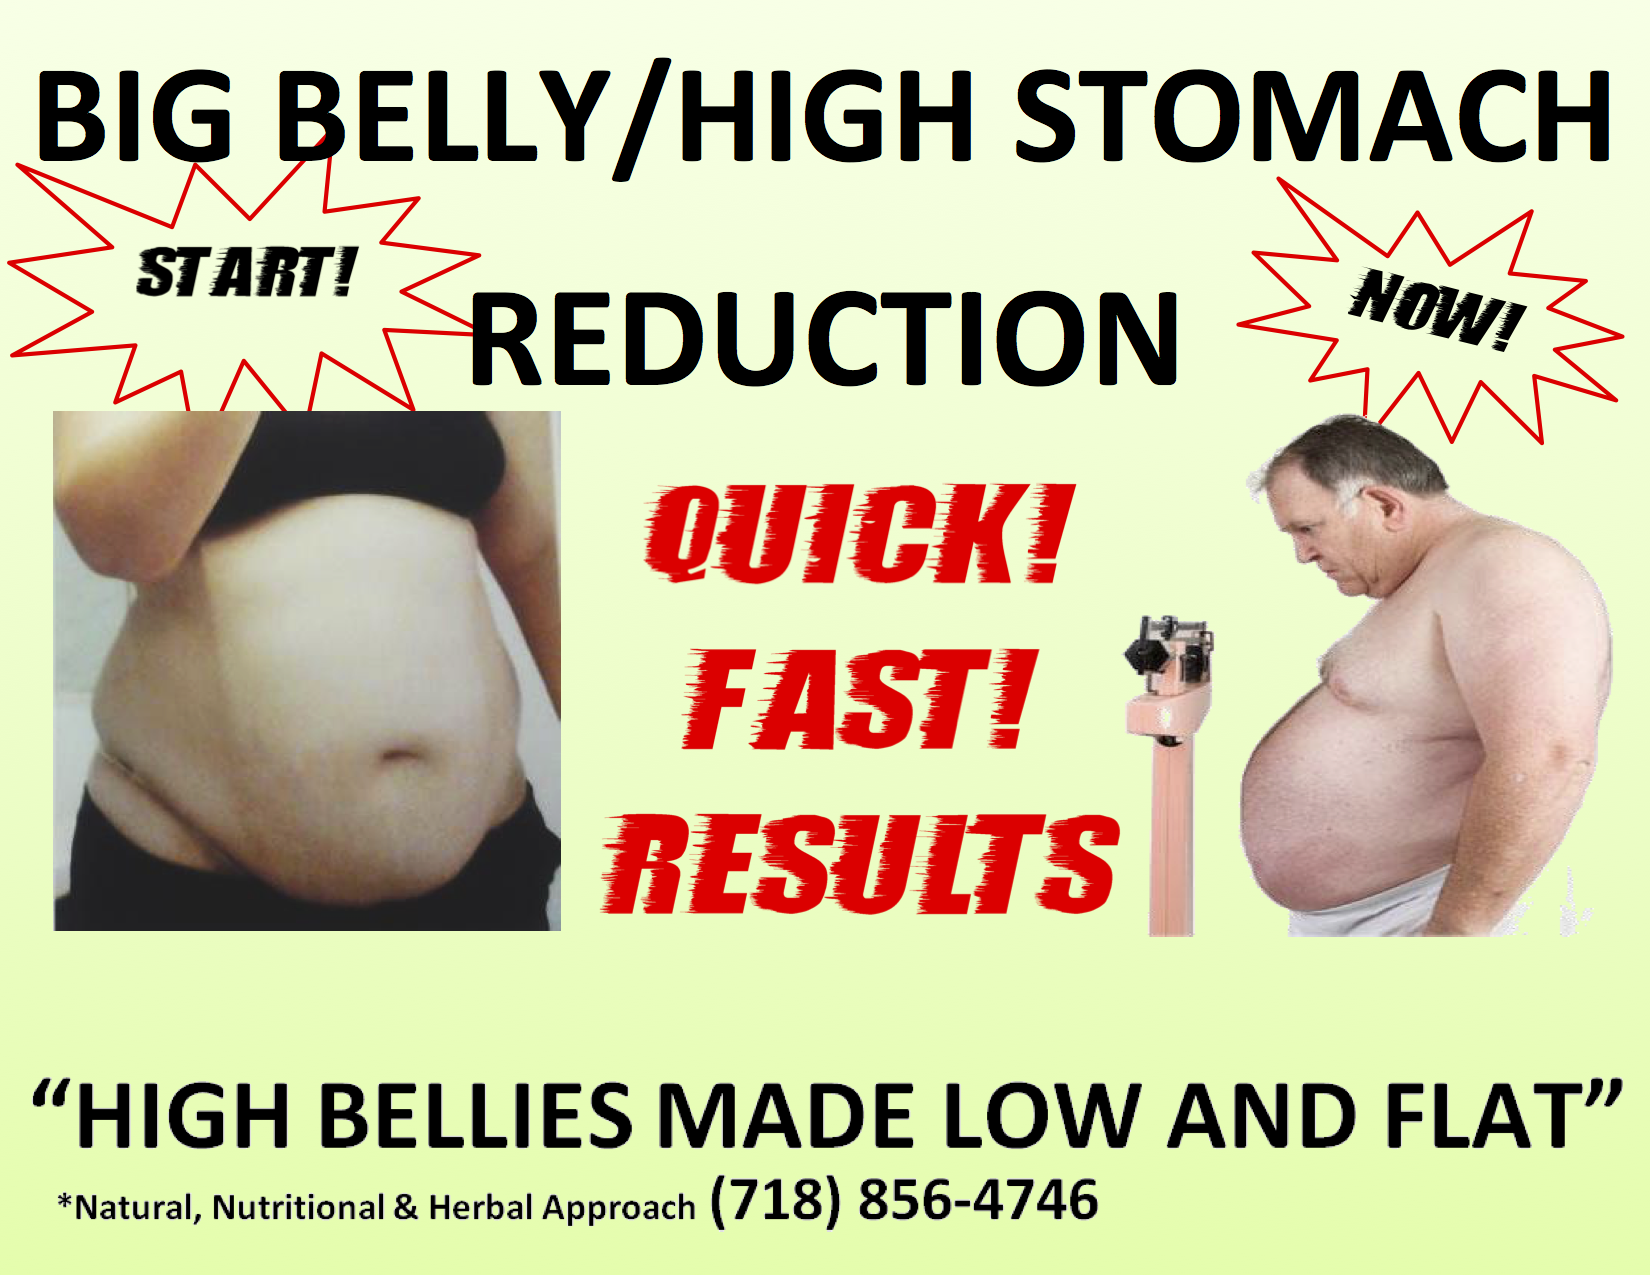 BIG BELLY REDUCTION